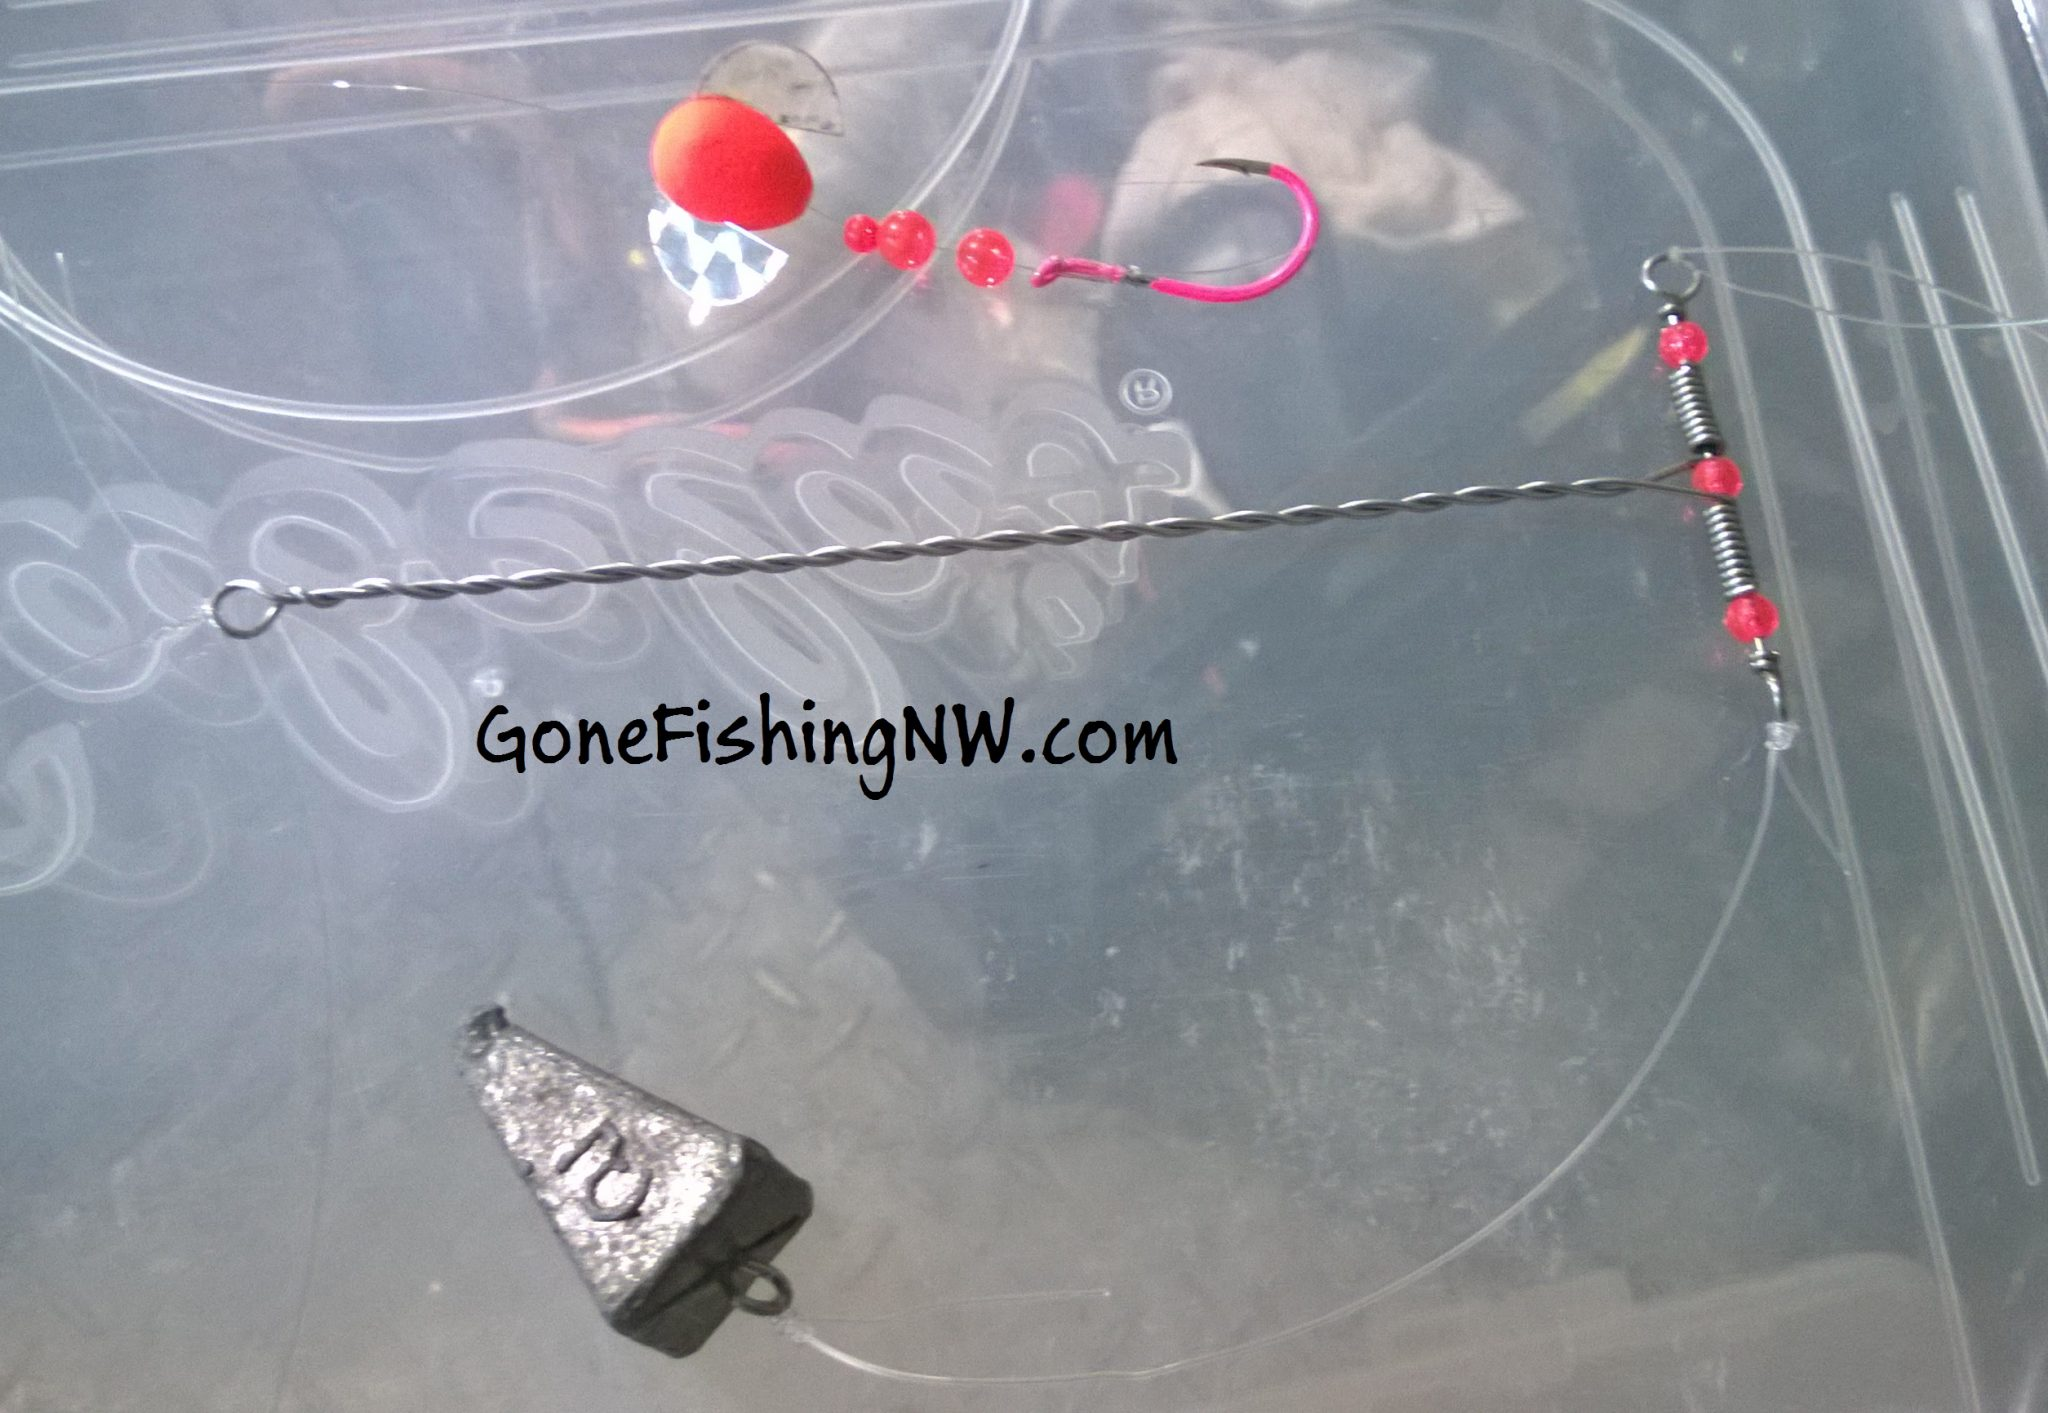 Pink salmon fishing basics plunking gone fishing nw for Salmon fishing setup